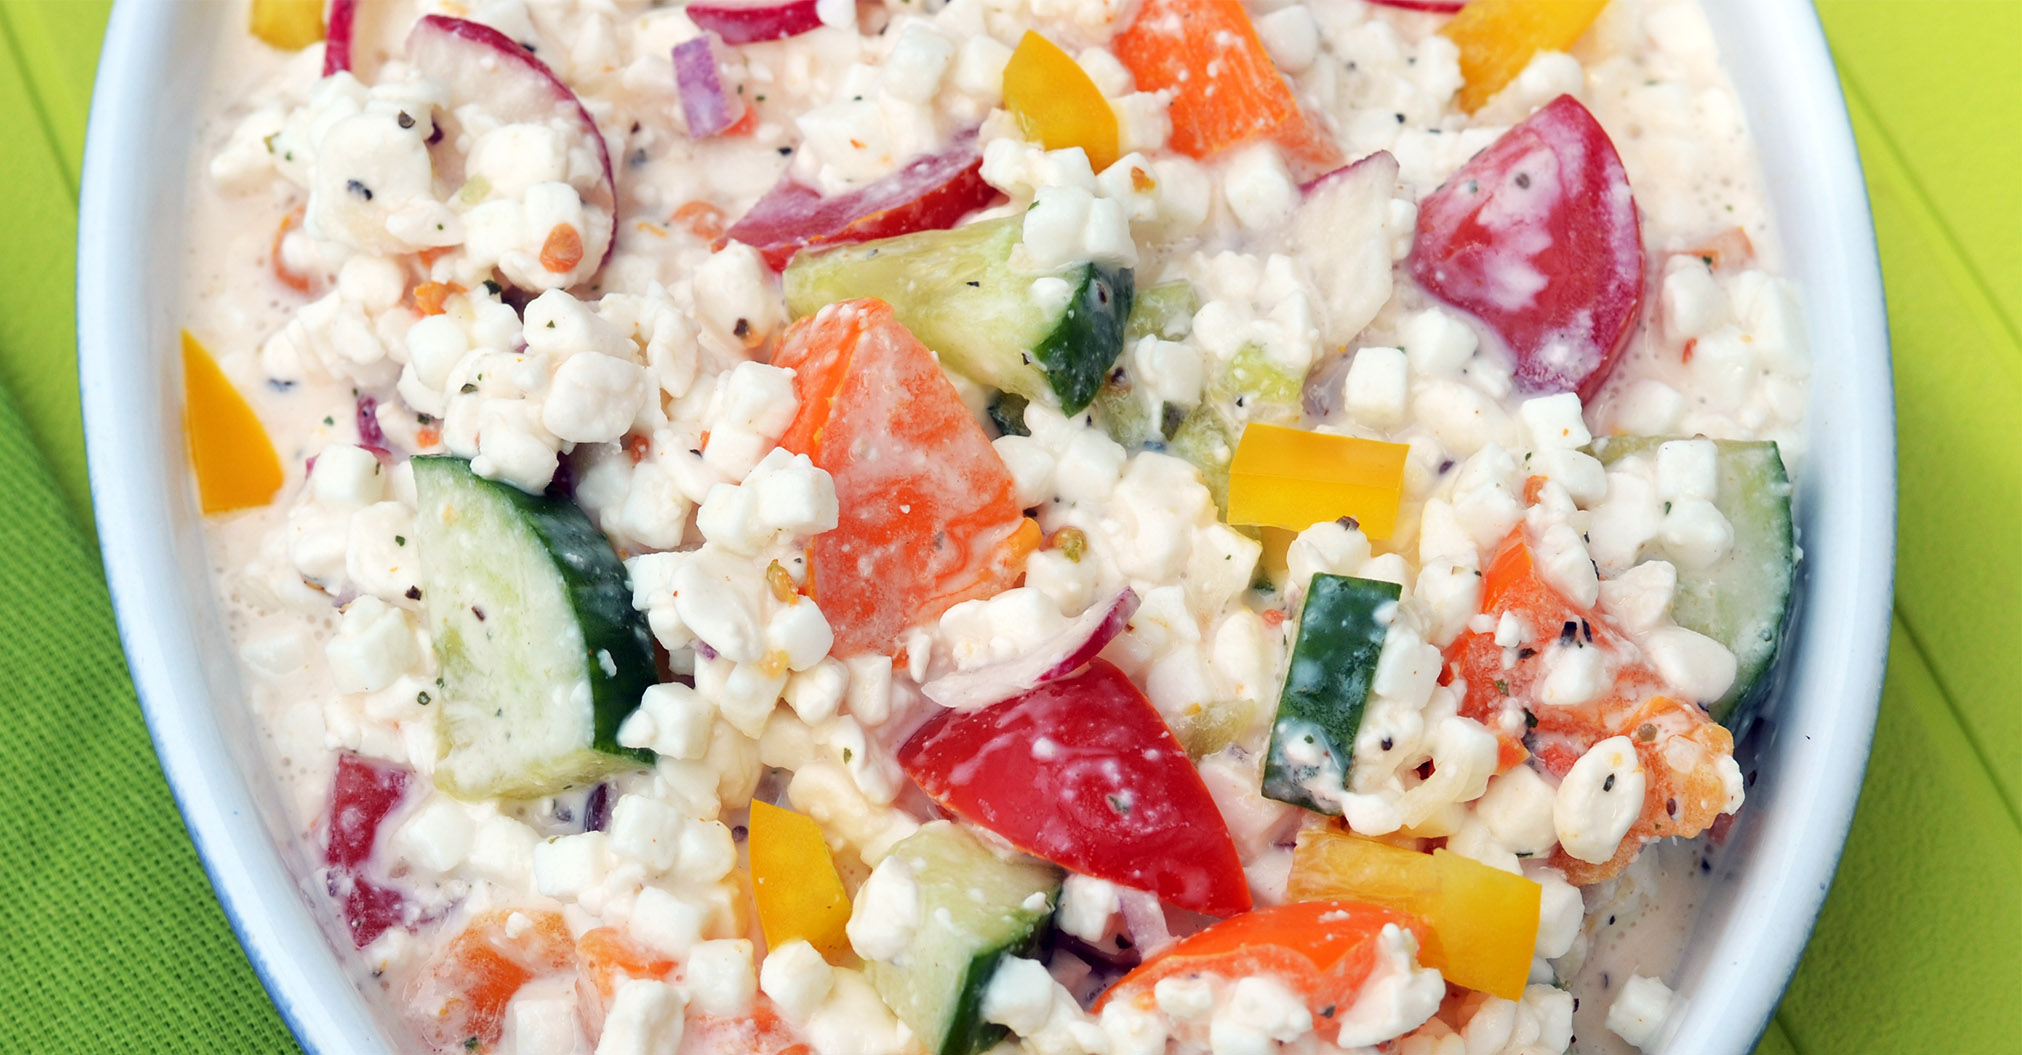 cottage cheese veggie salad foods with judes rh foodswithjudes com cottage cheese indian vegetarian recipes cottage cheese vegetable salad recipes